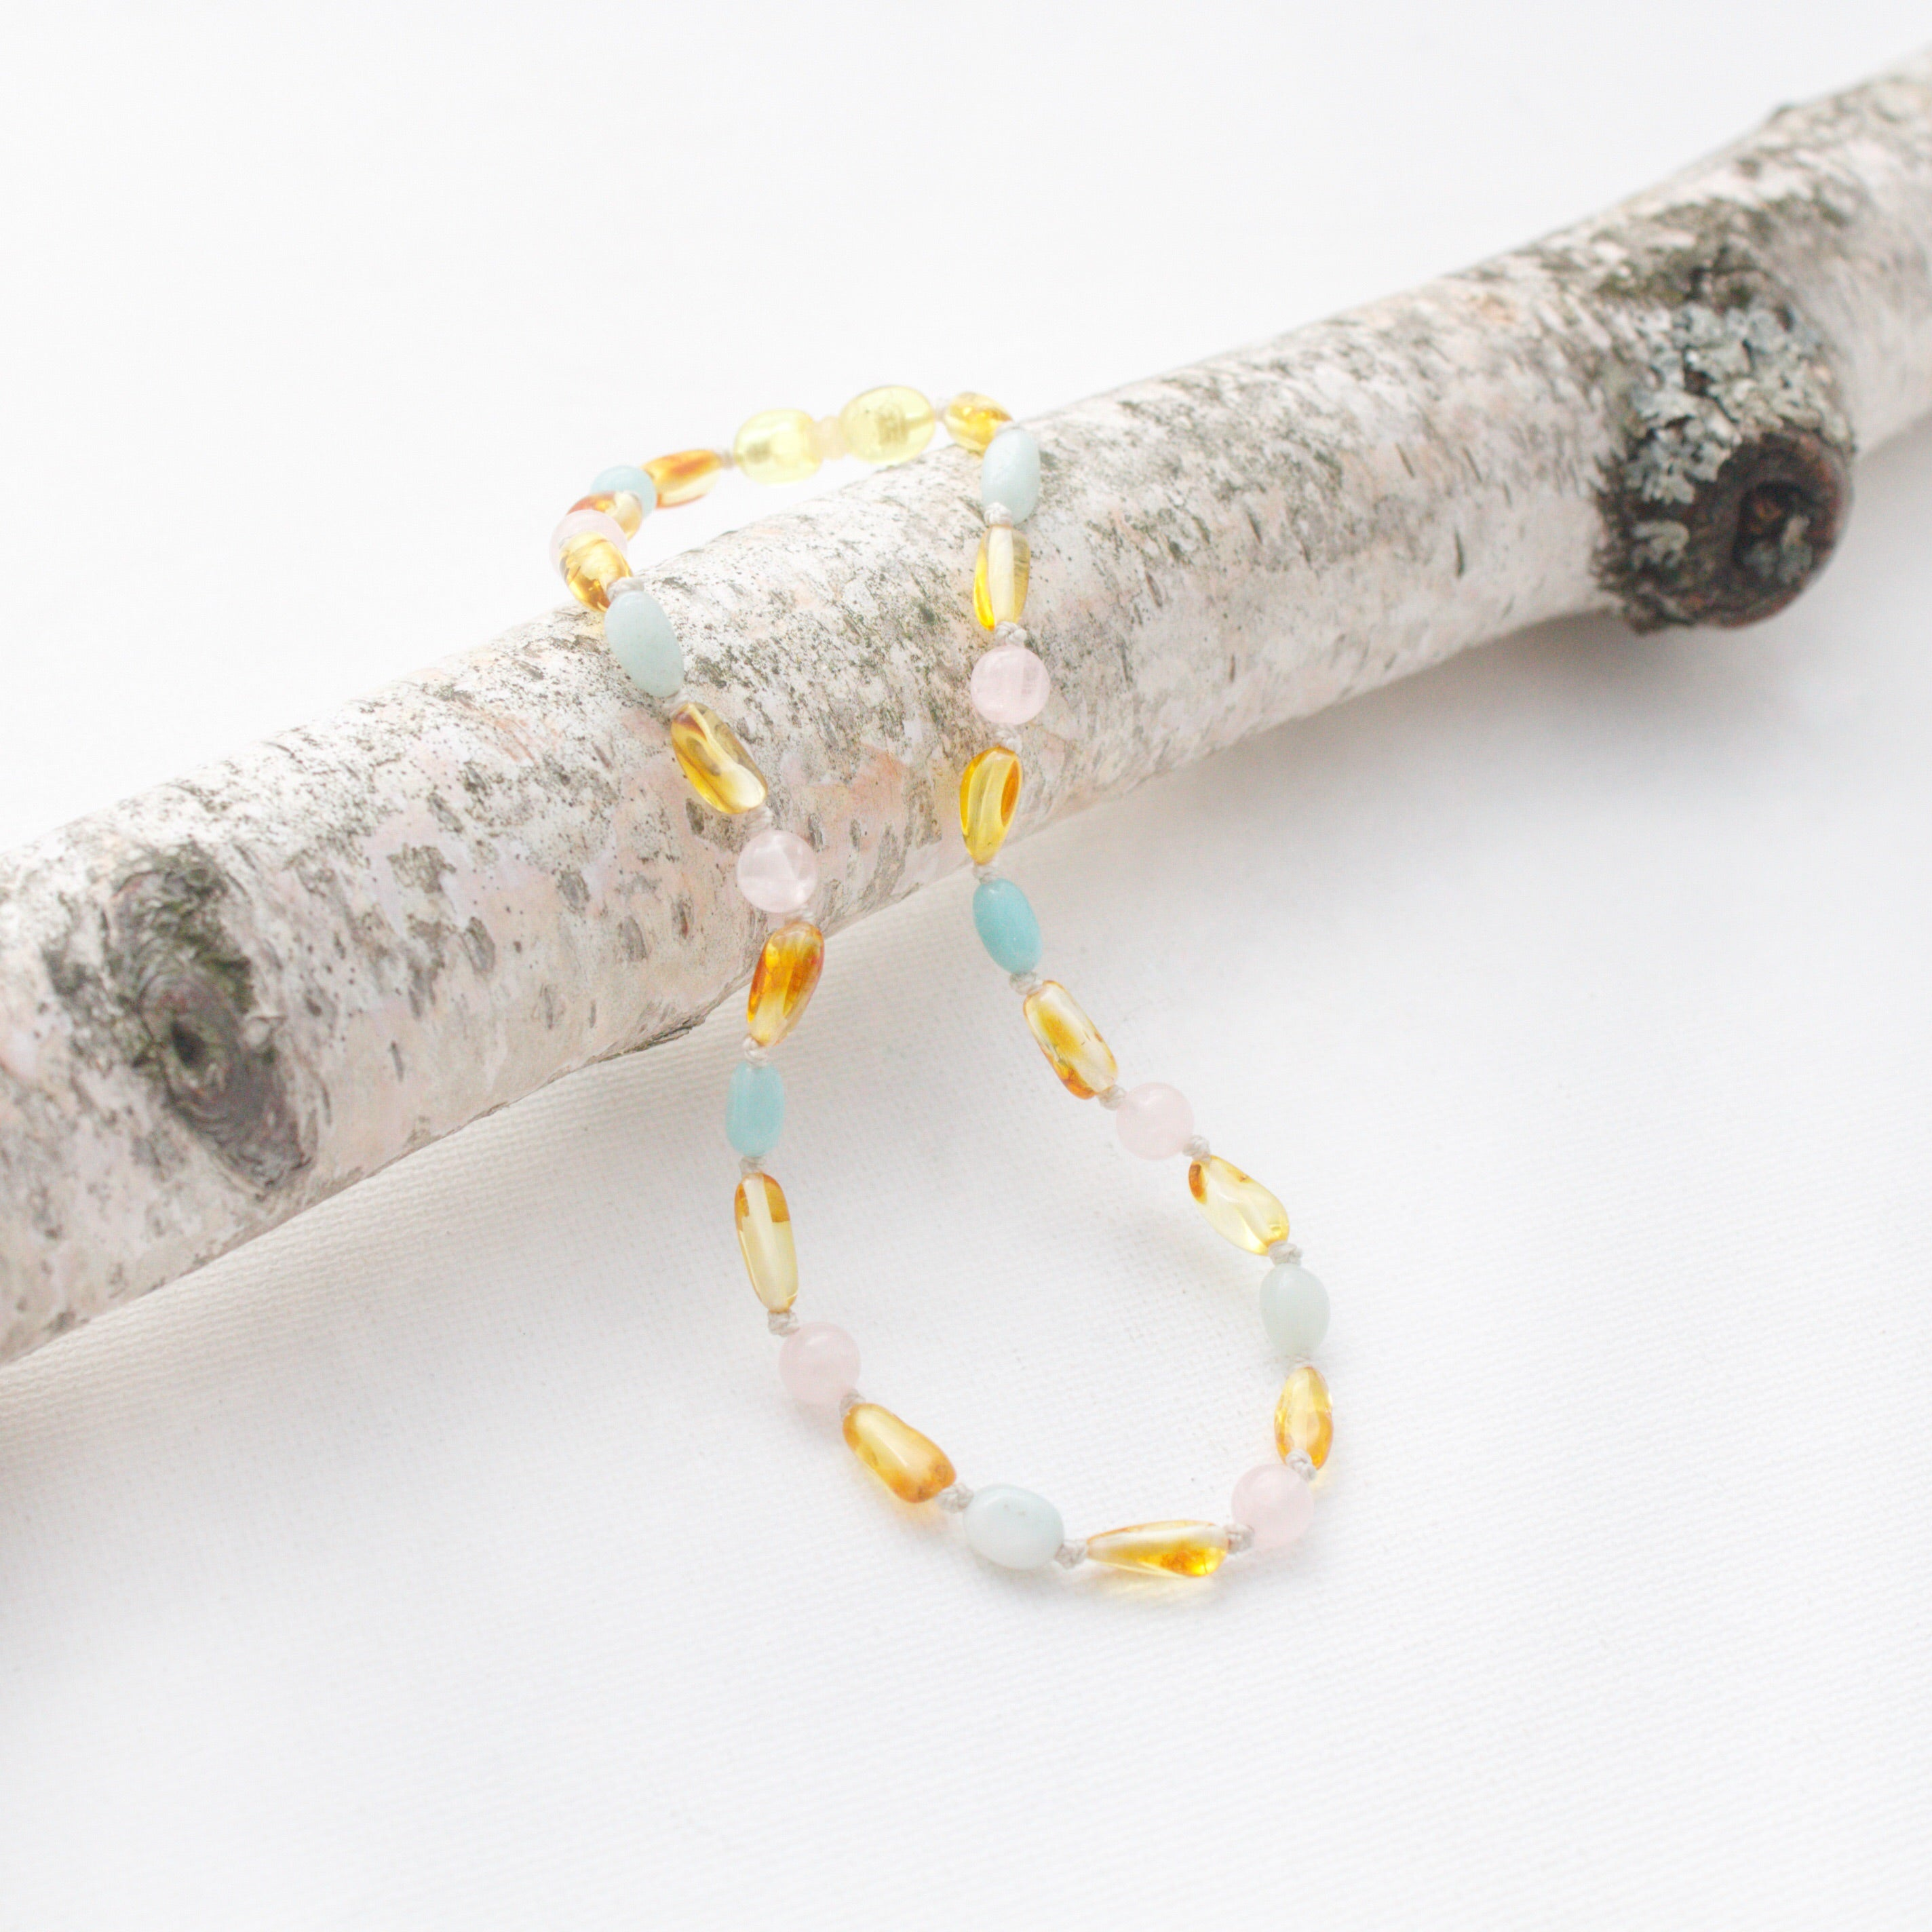 Baltic Amber Teething Necklace | Lemon Amber + Rose Quartz + Peruvian Amazonite